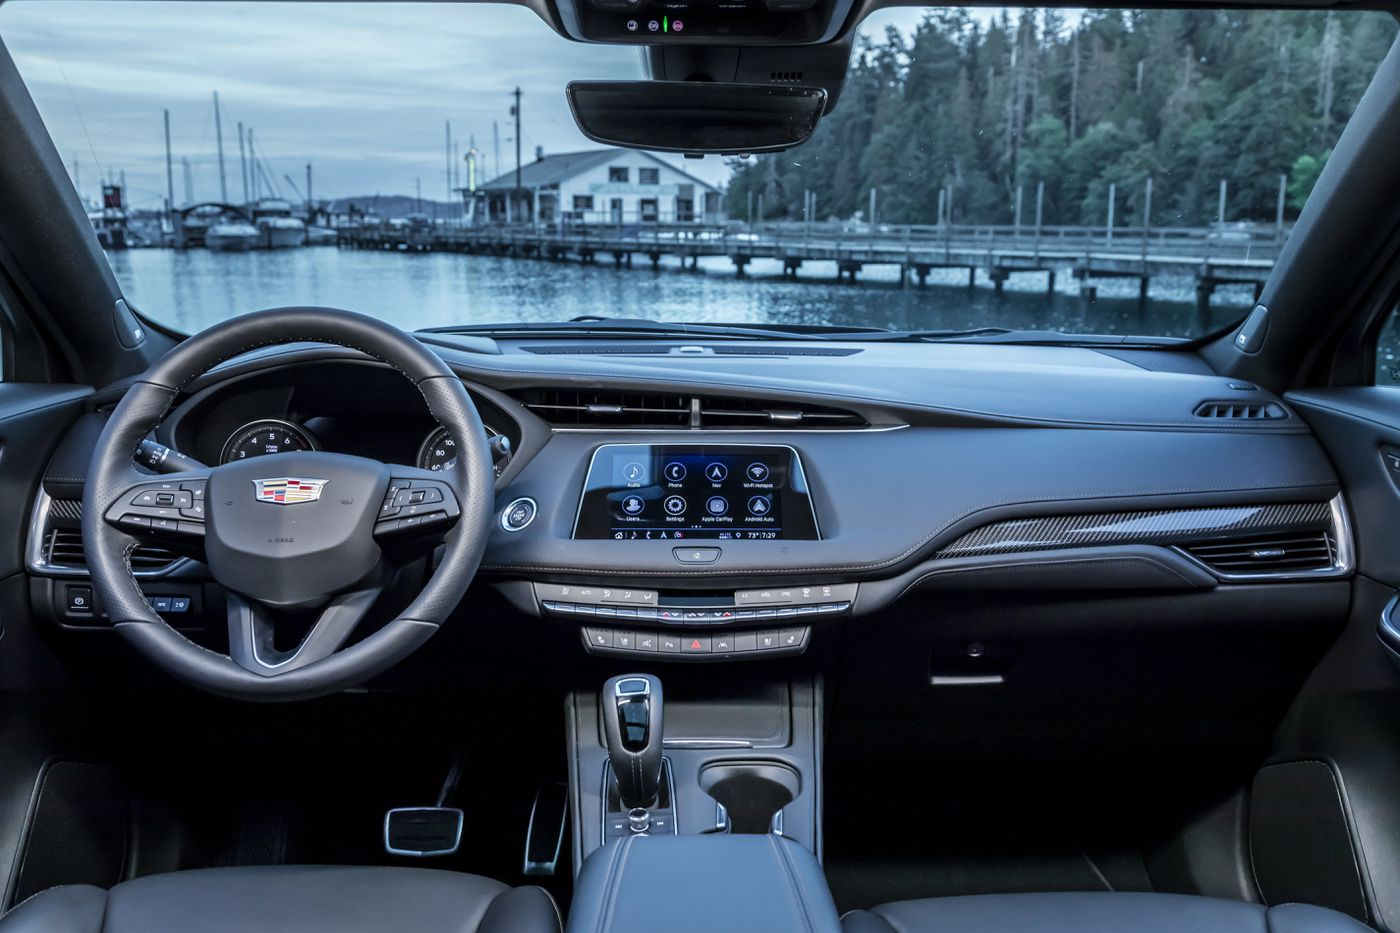 2019 Cadillac Xt4 A Split Personality Small Premium Crossover